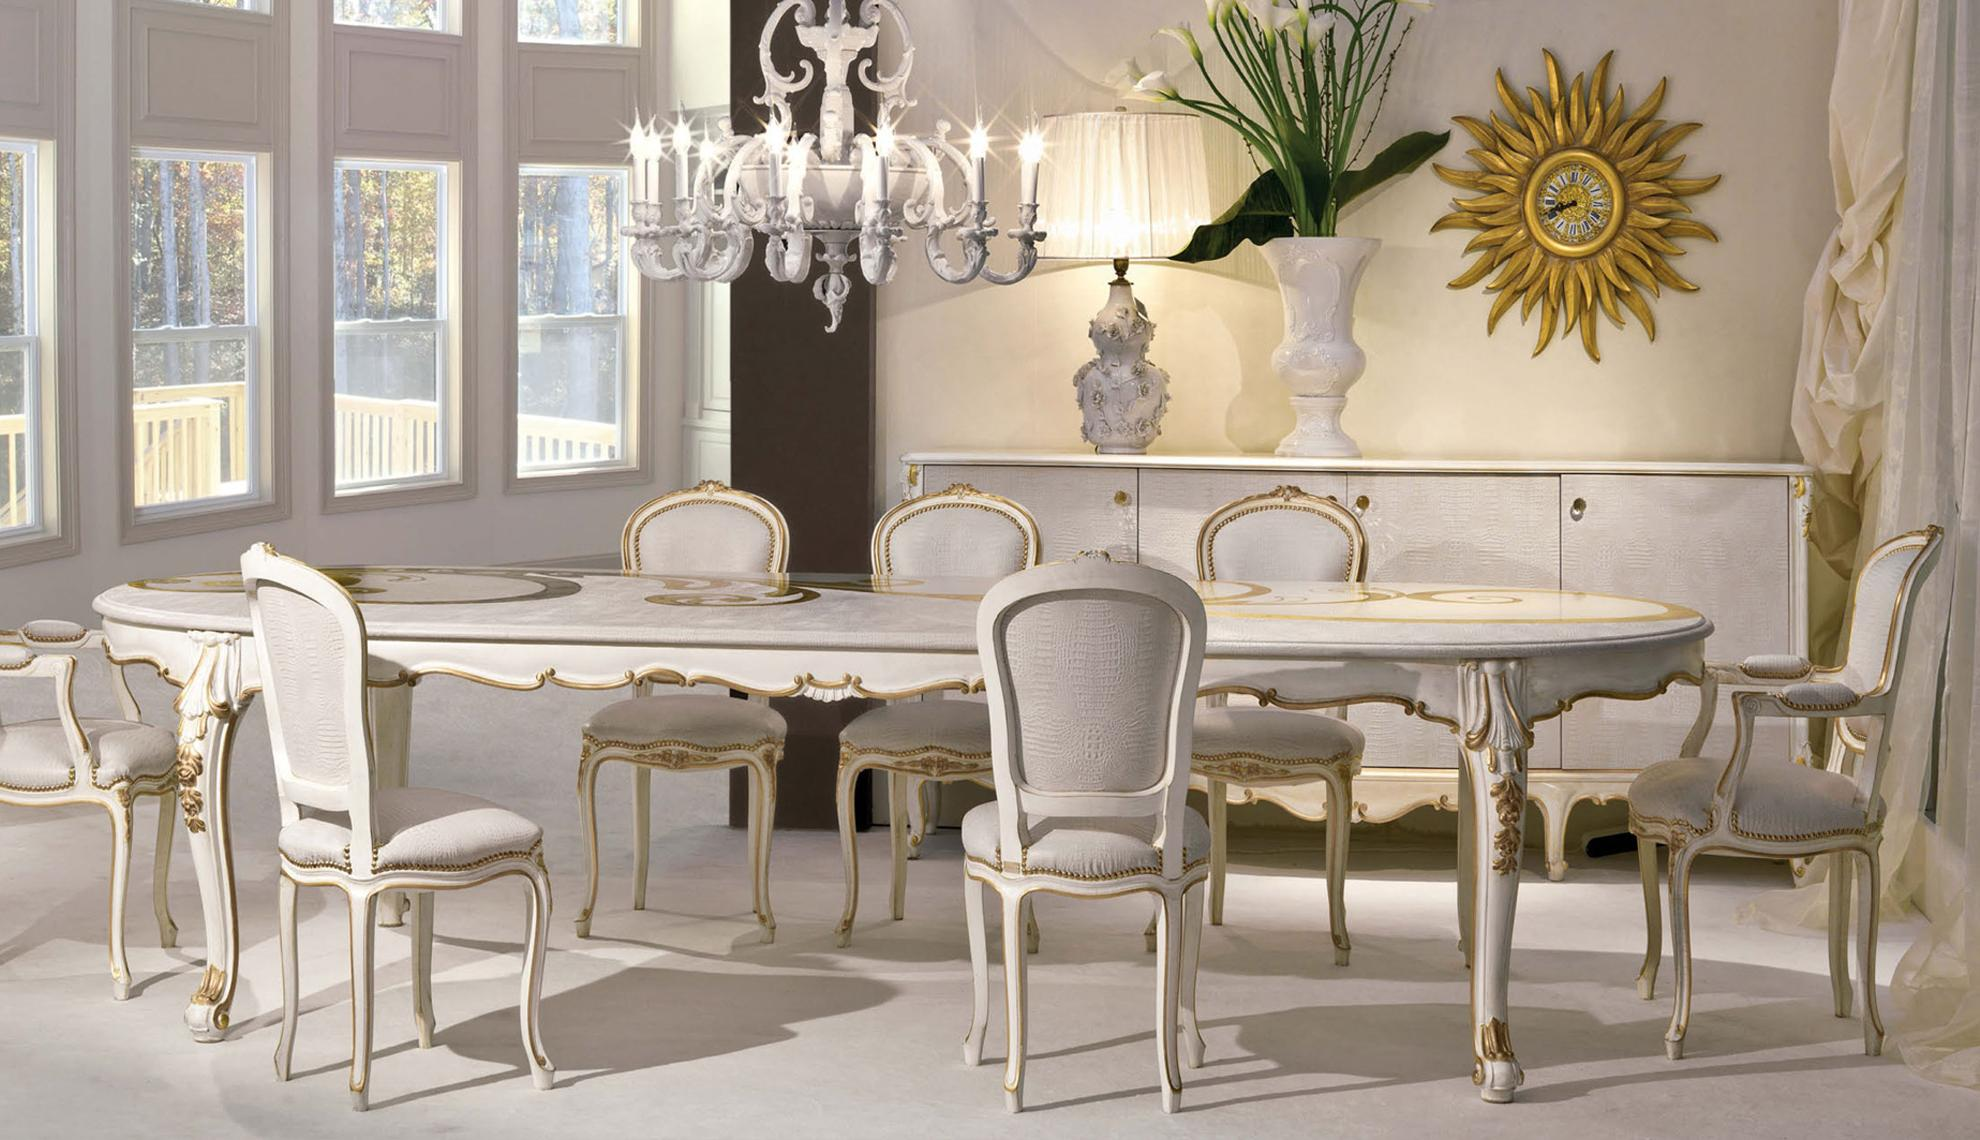 Dining room table and chairs ideas with images for Small dining room table and chairs